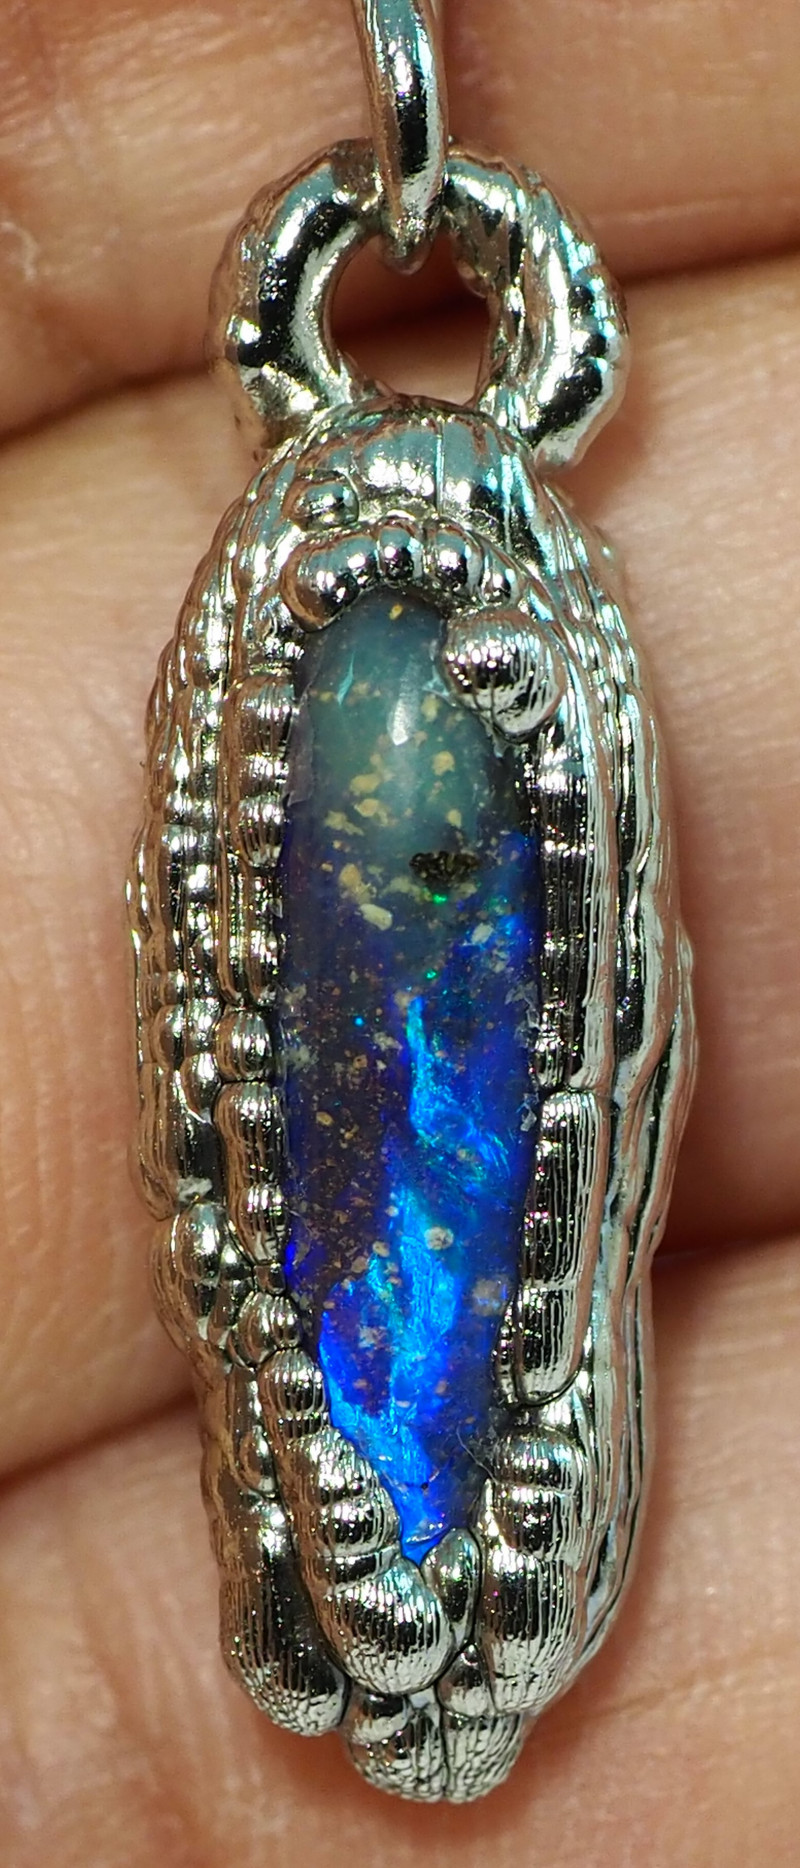 19.45CT OPAL PENDANT WITH SILVER COPPER ELECTRO FORM BJ62